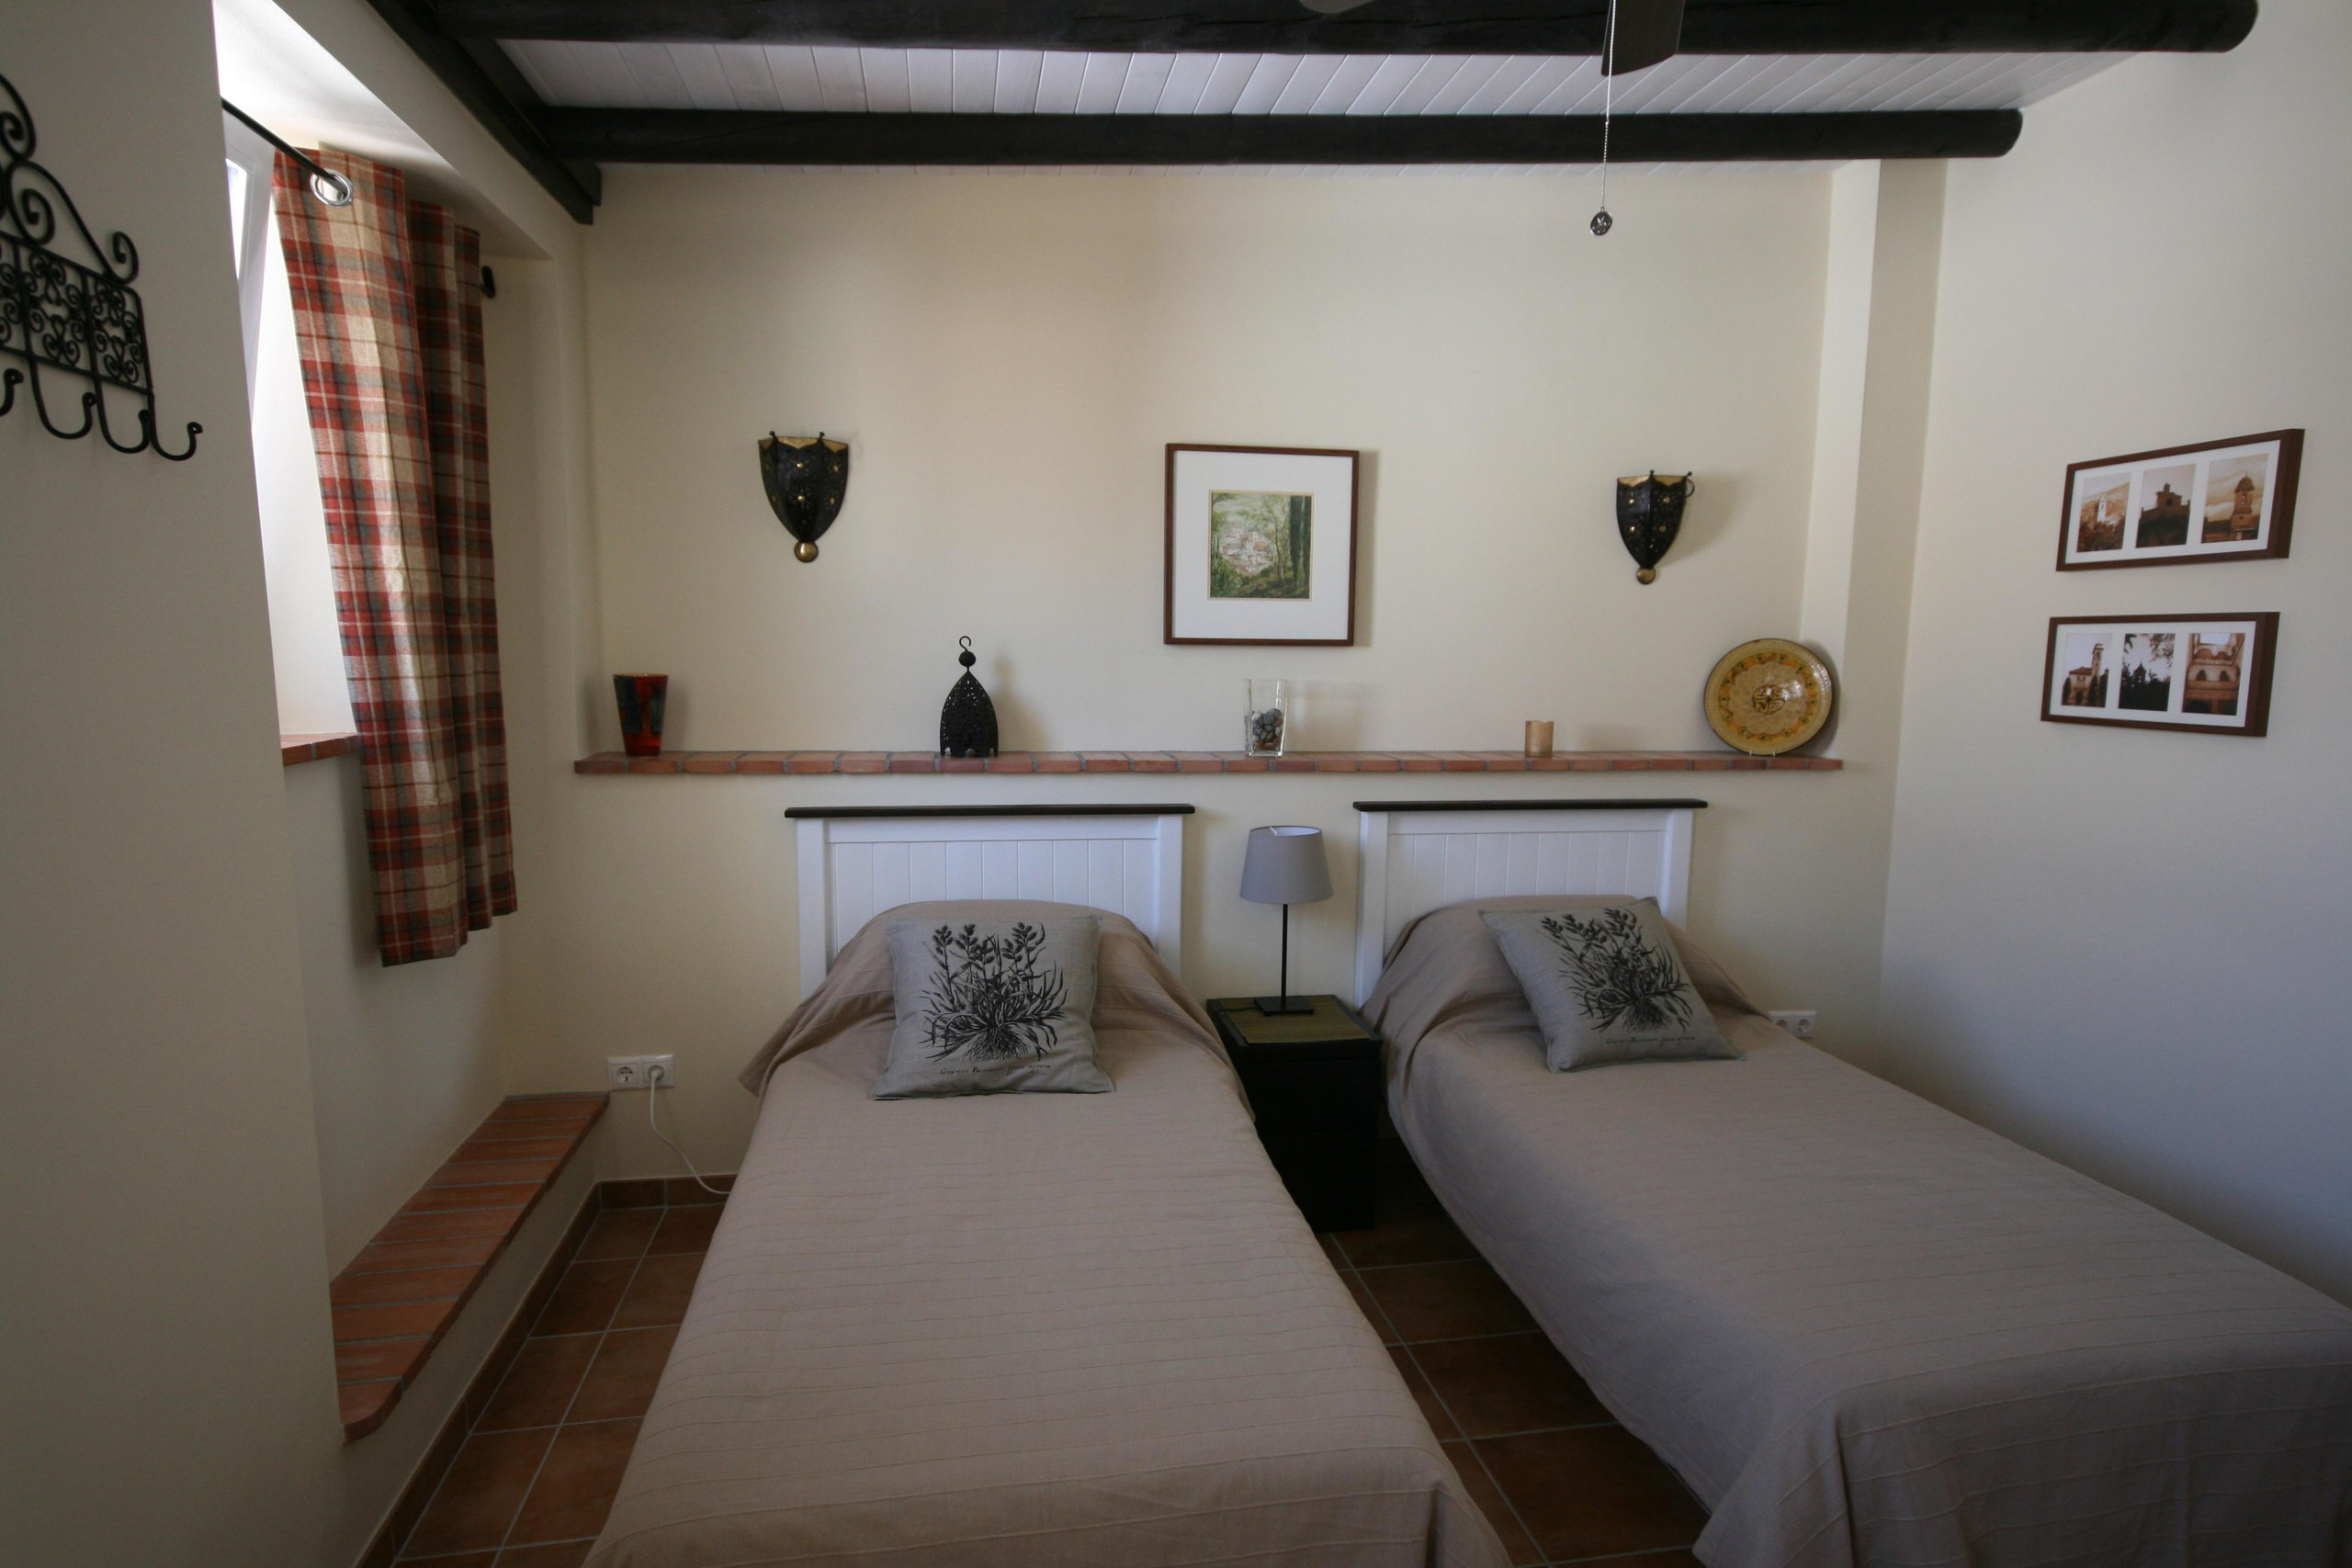 Casa Molino - Terrace Room - House